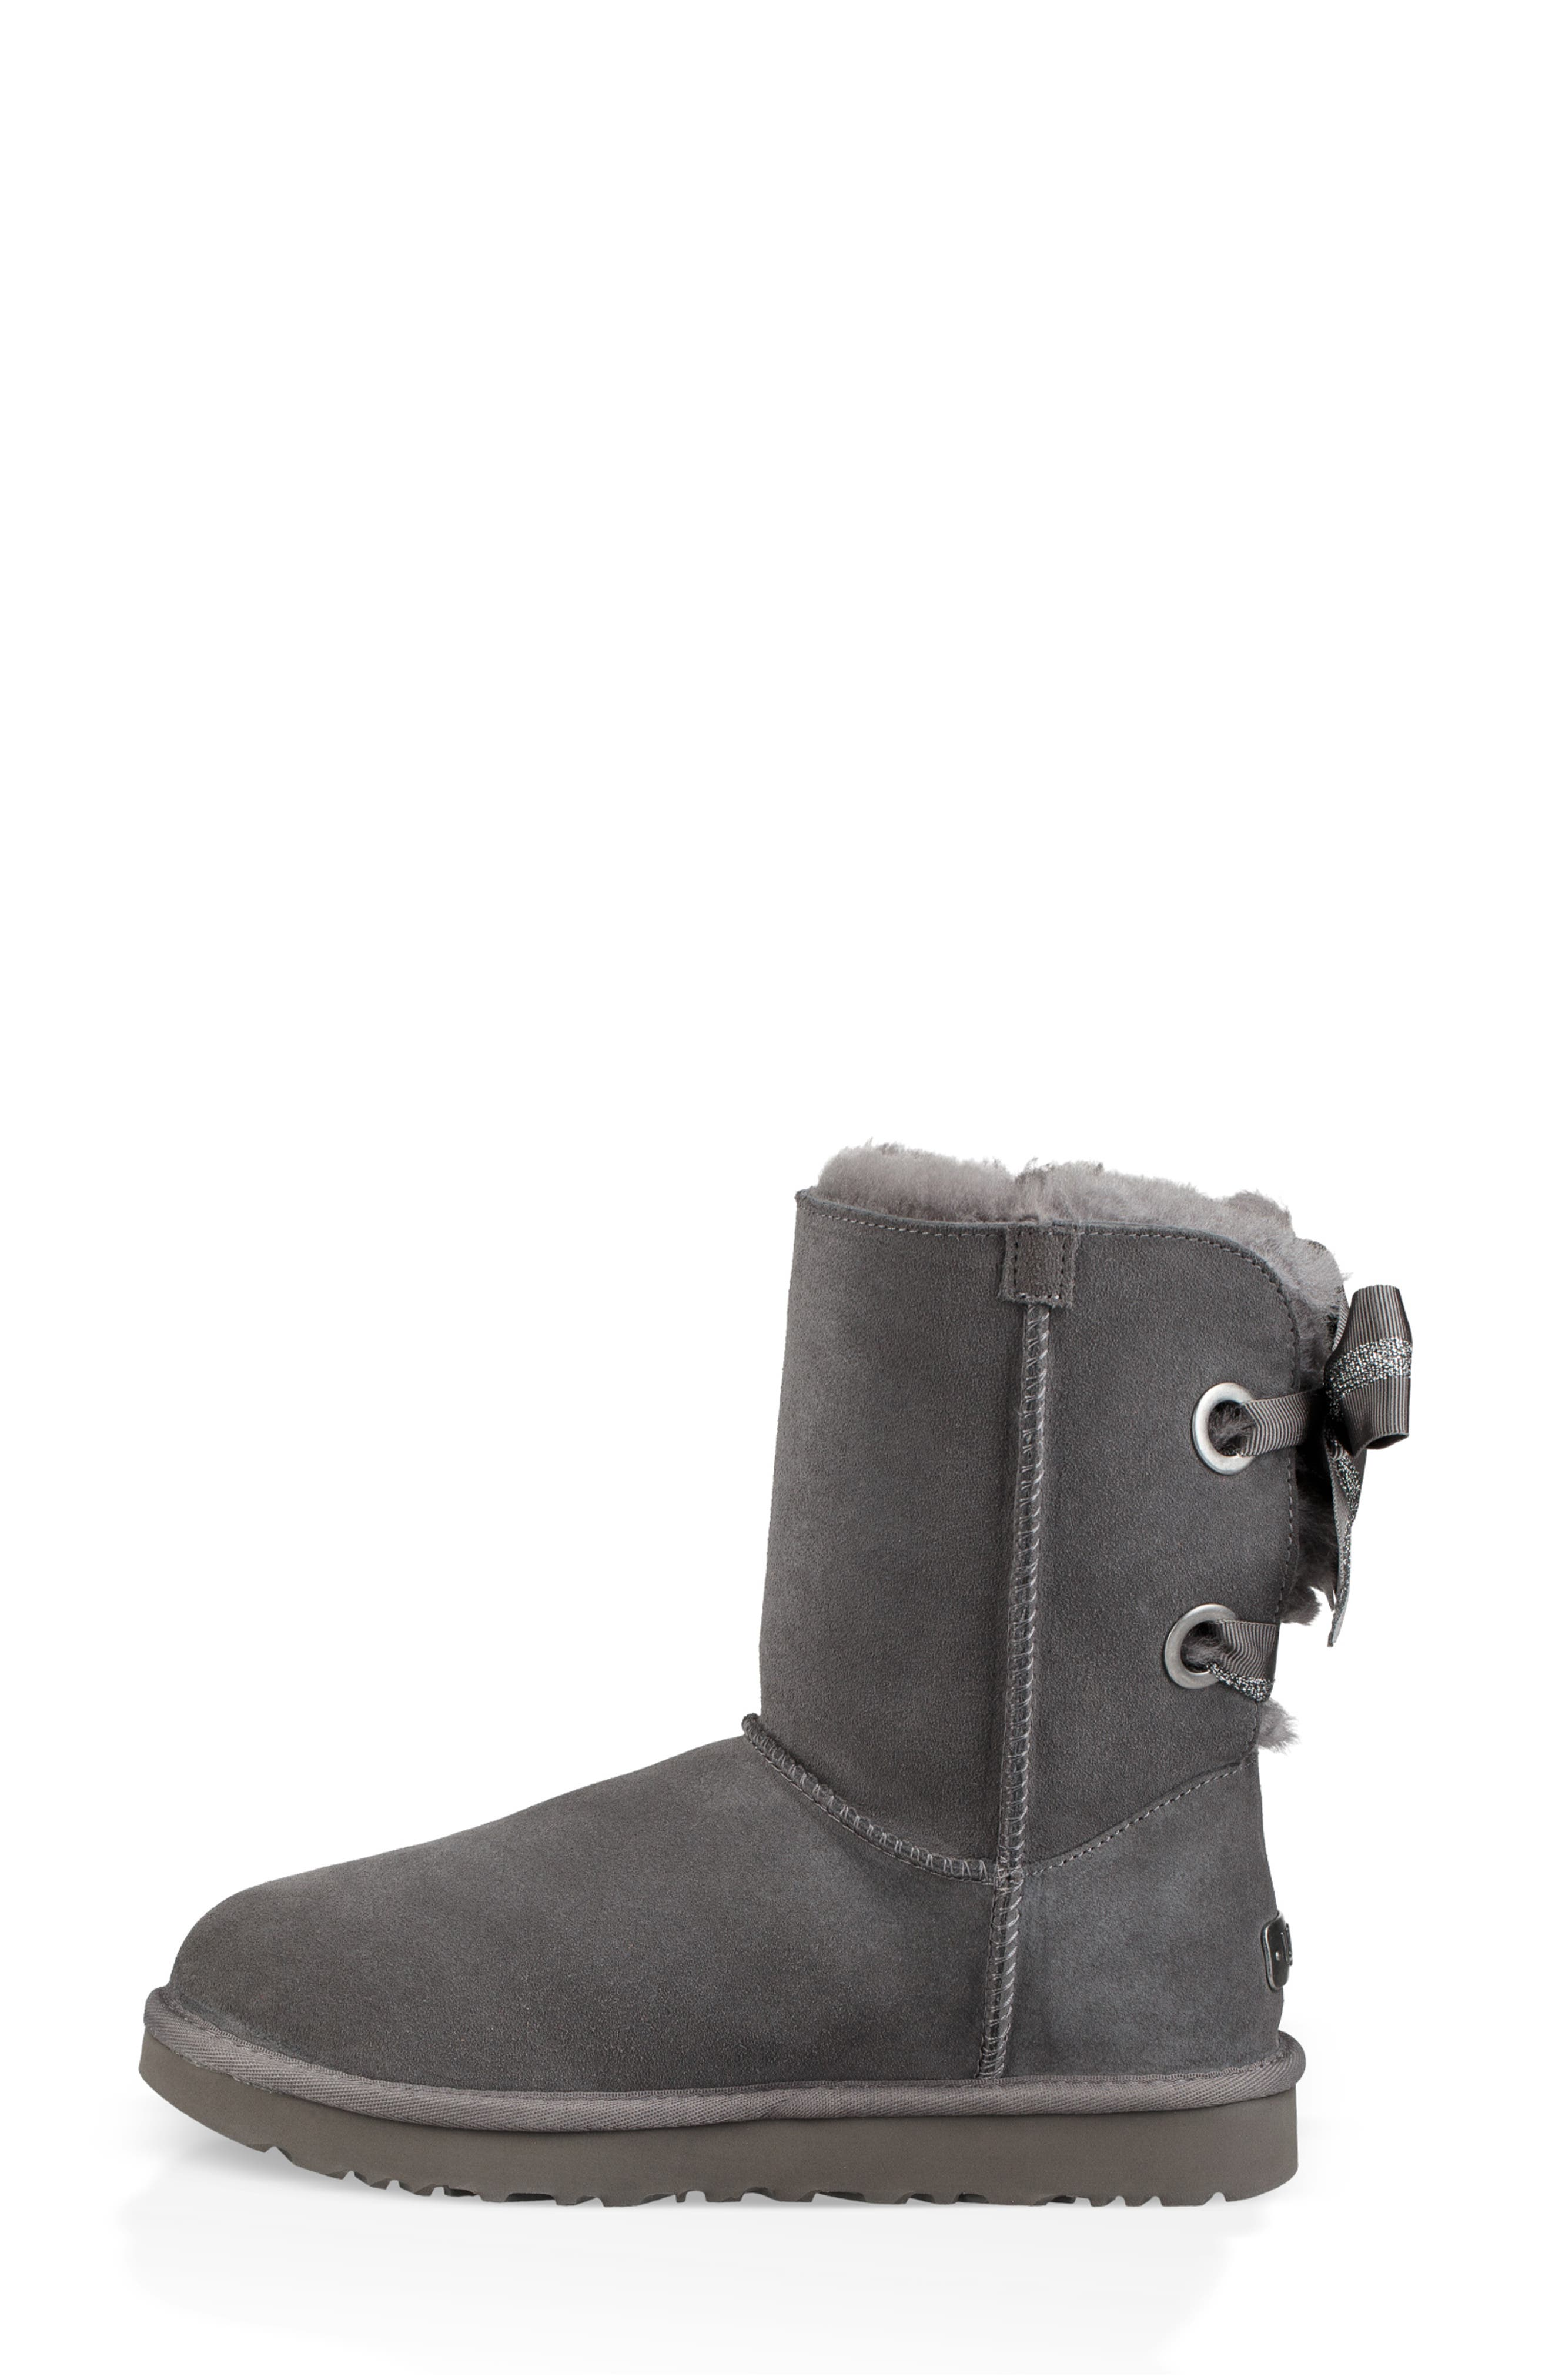 Customizable Bailey Bow Genuine Shearling Bootie,                             Alternate thumbnail 6, color,                             CHARCOAL SUEDE